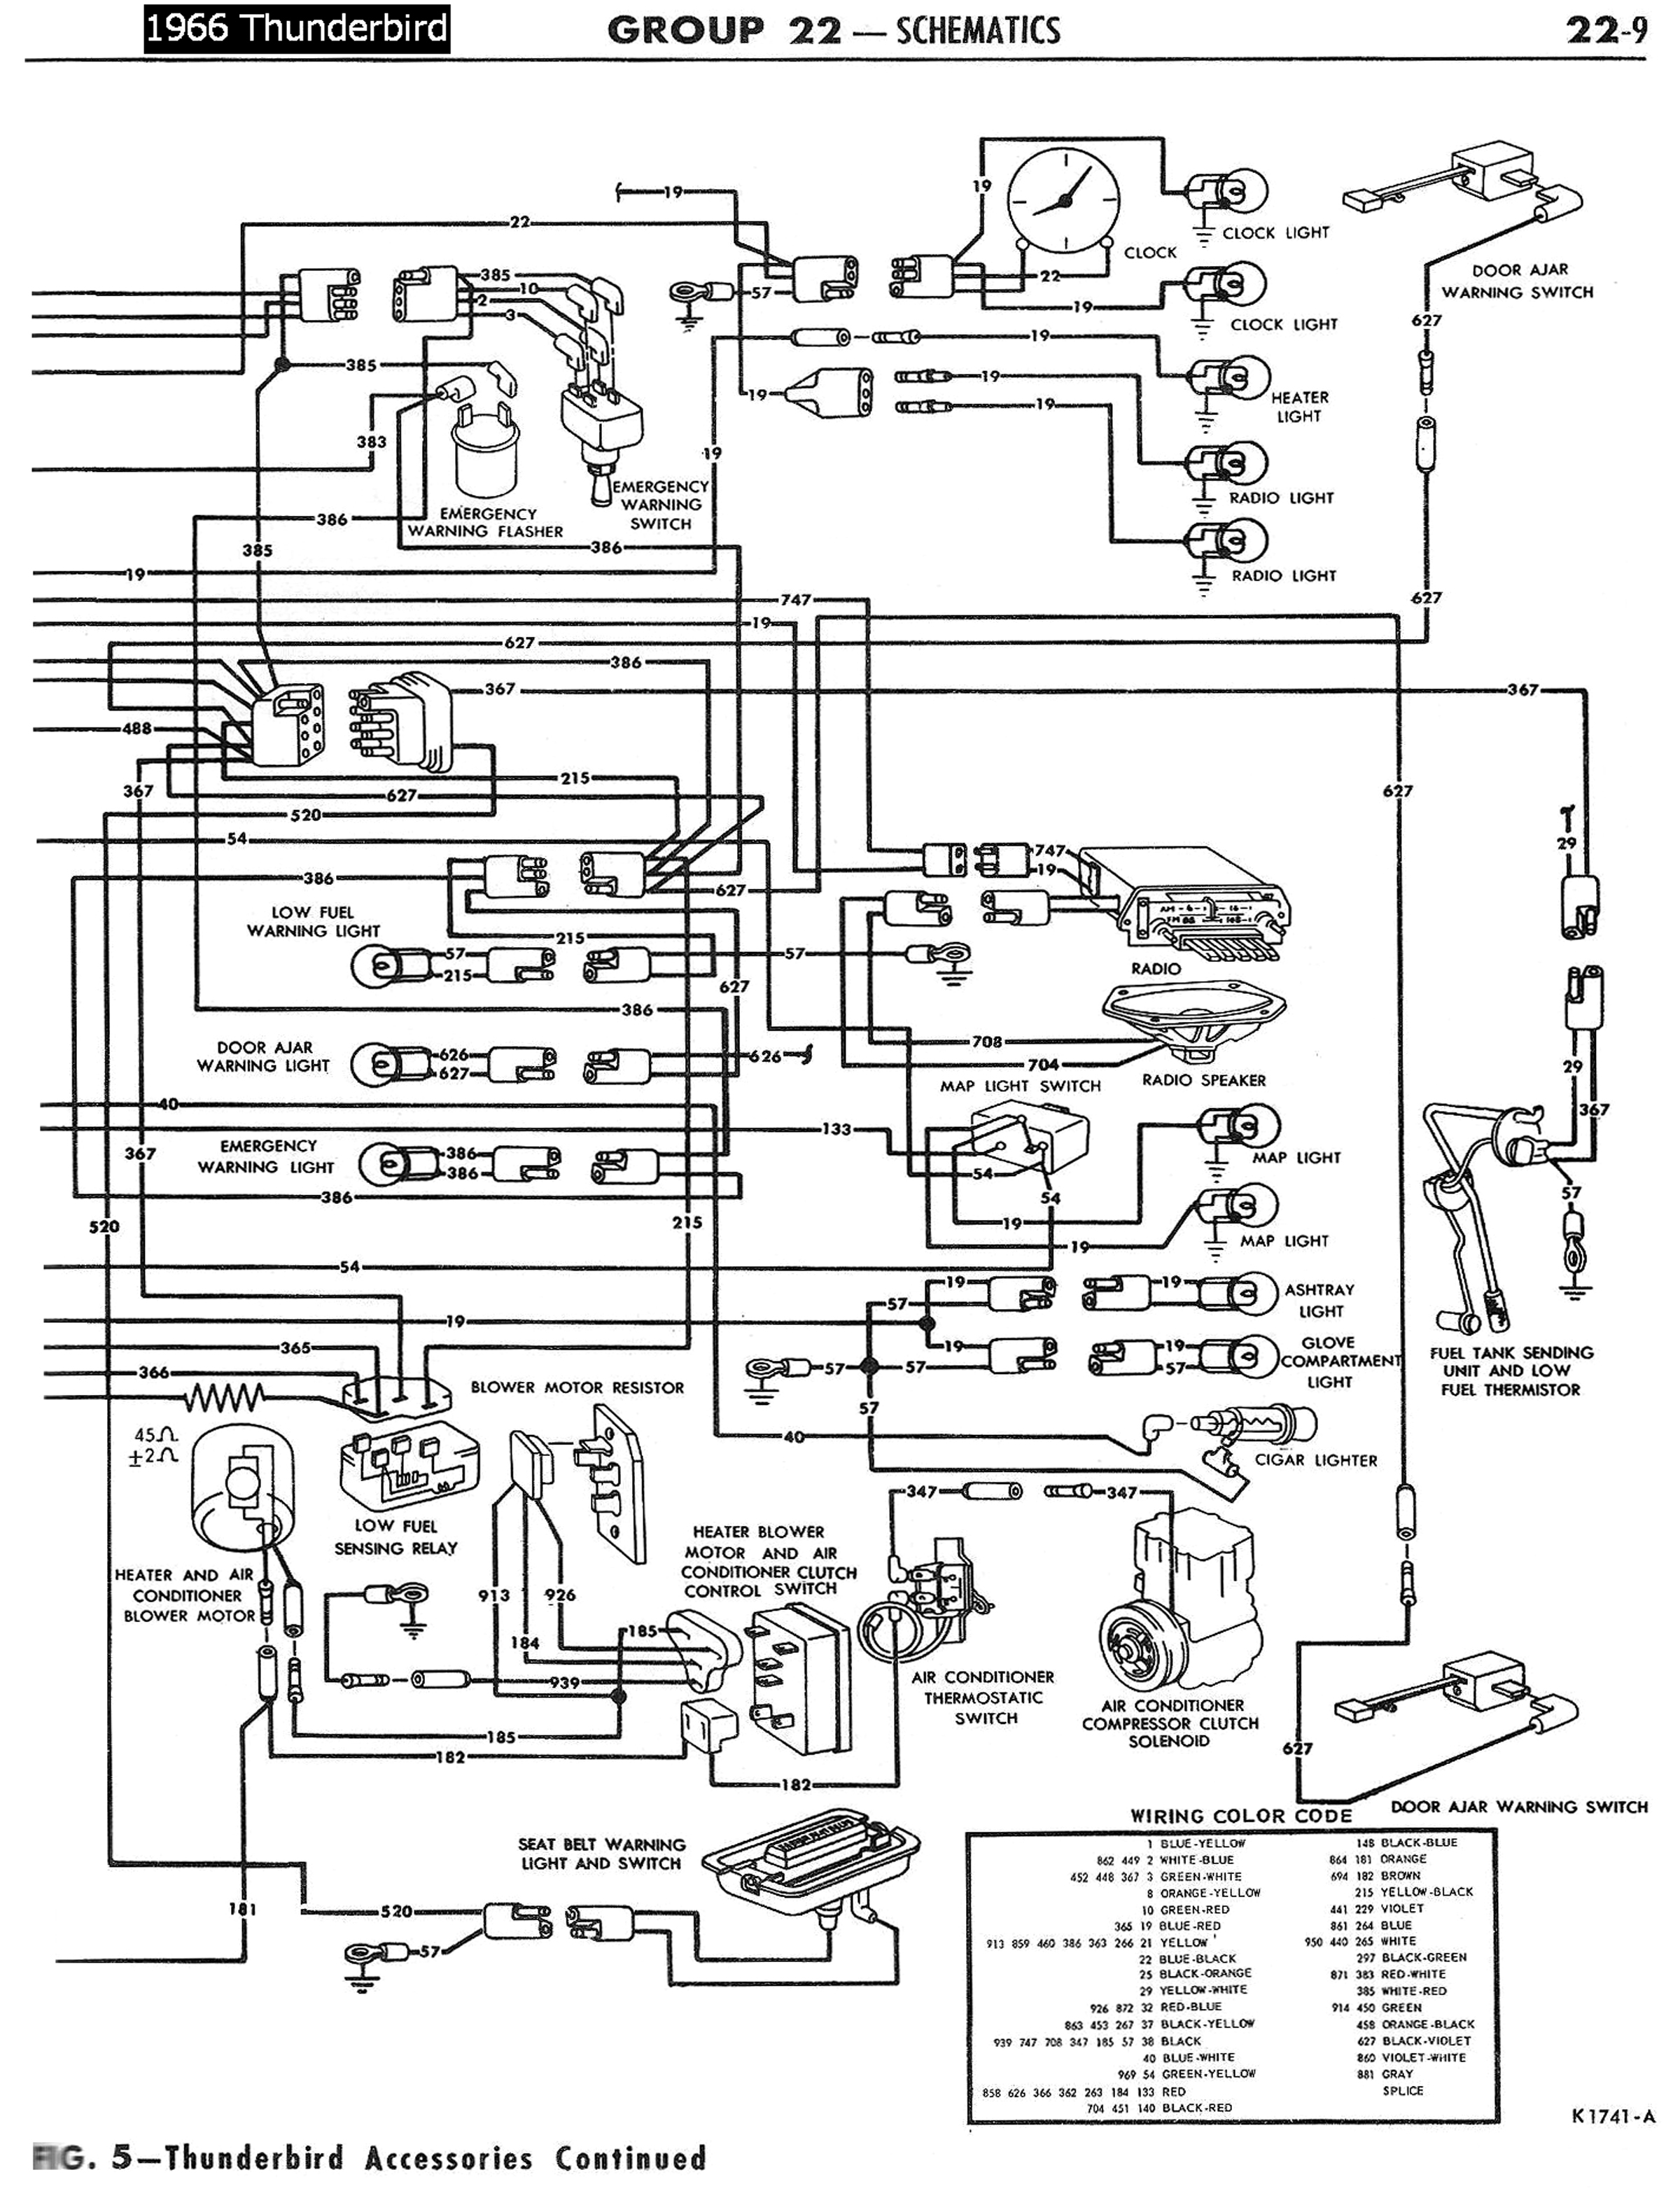 1972 Ford Thunderbird Wiring Diagrams Great Installation Of 1970 Ltd Diagram 77 Todays Rh 13 1813weddingbarn Com 1965